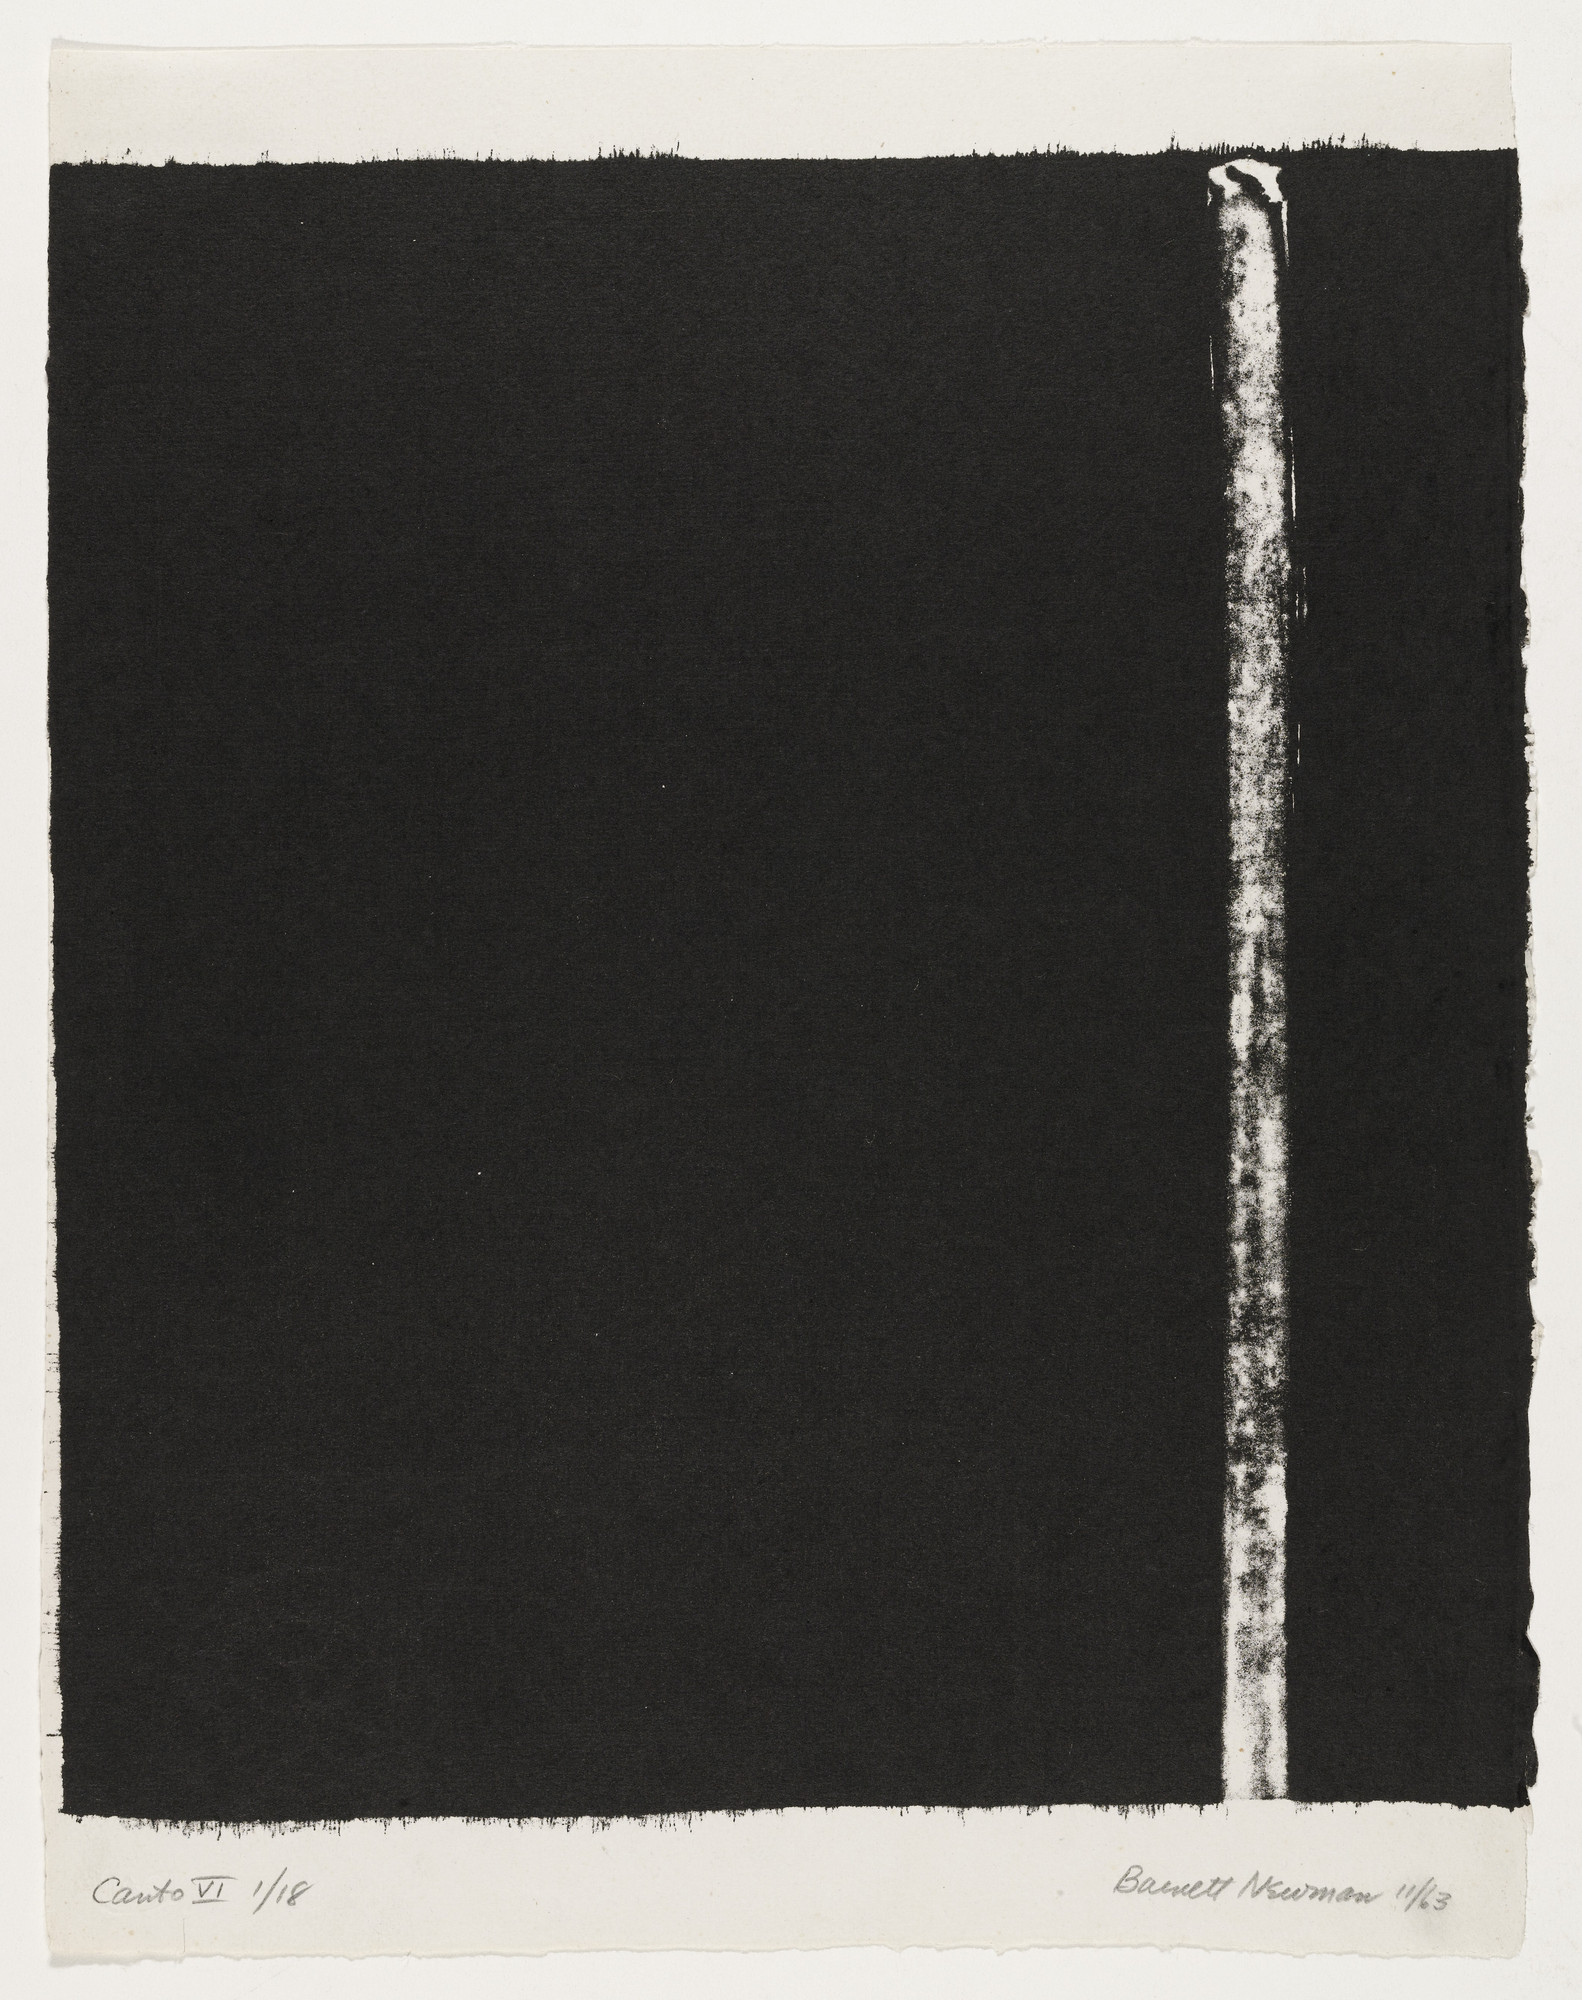 Barnett Newman. Canto VI from 18 Cantos. 1963